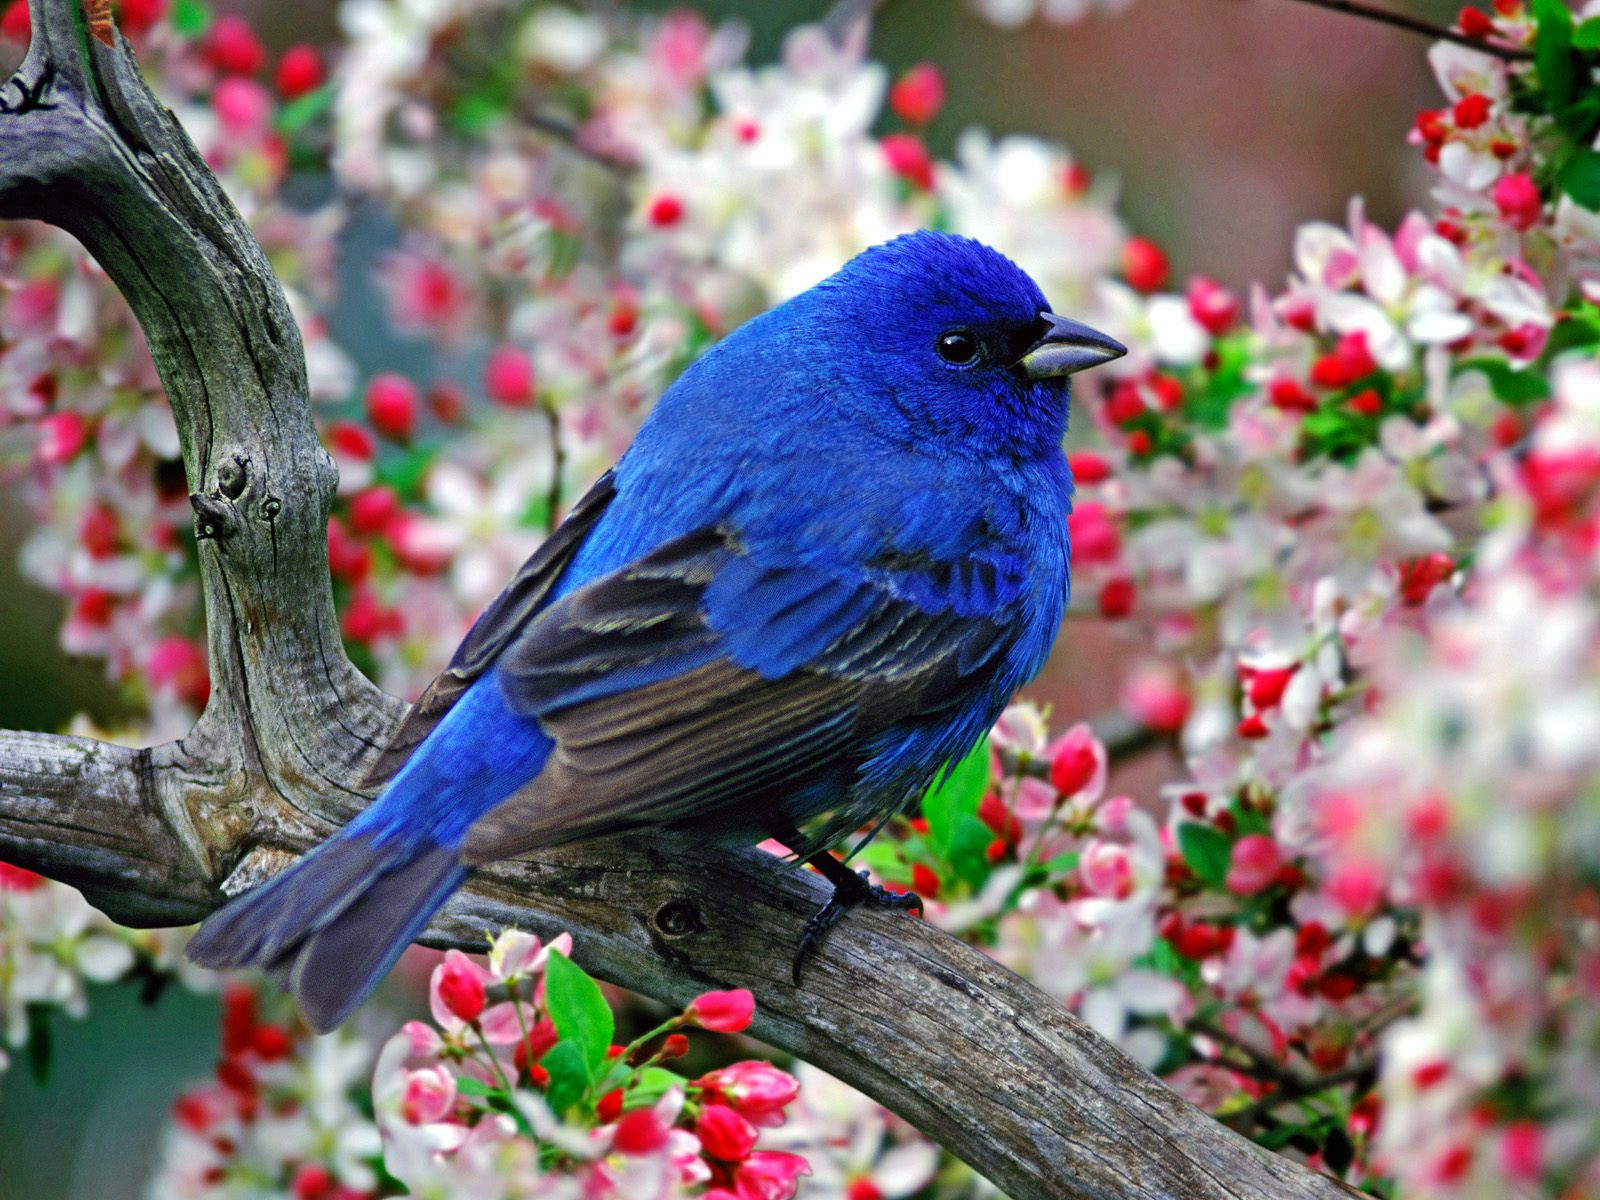 Colorful little bird wallpapers Colorful little bird stock photos 1600x1200